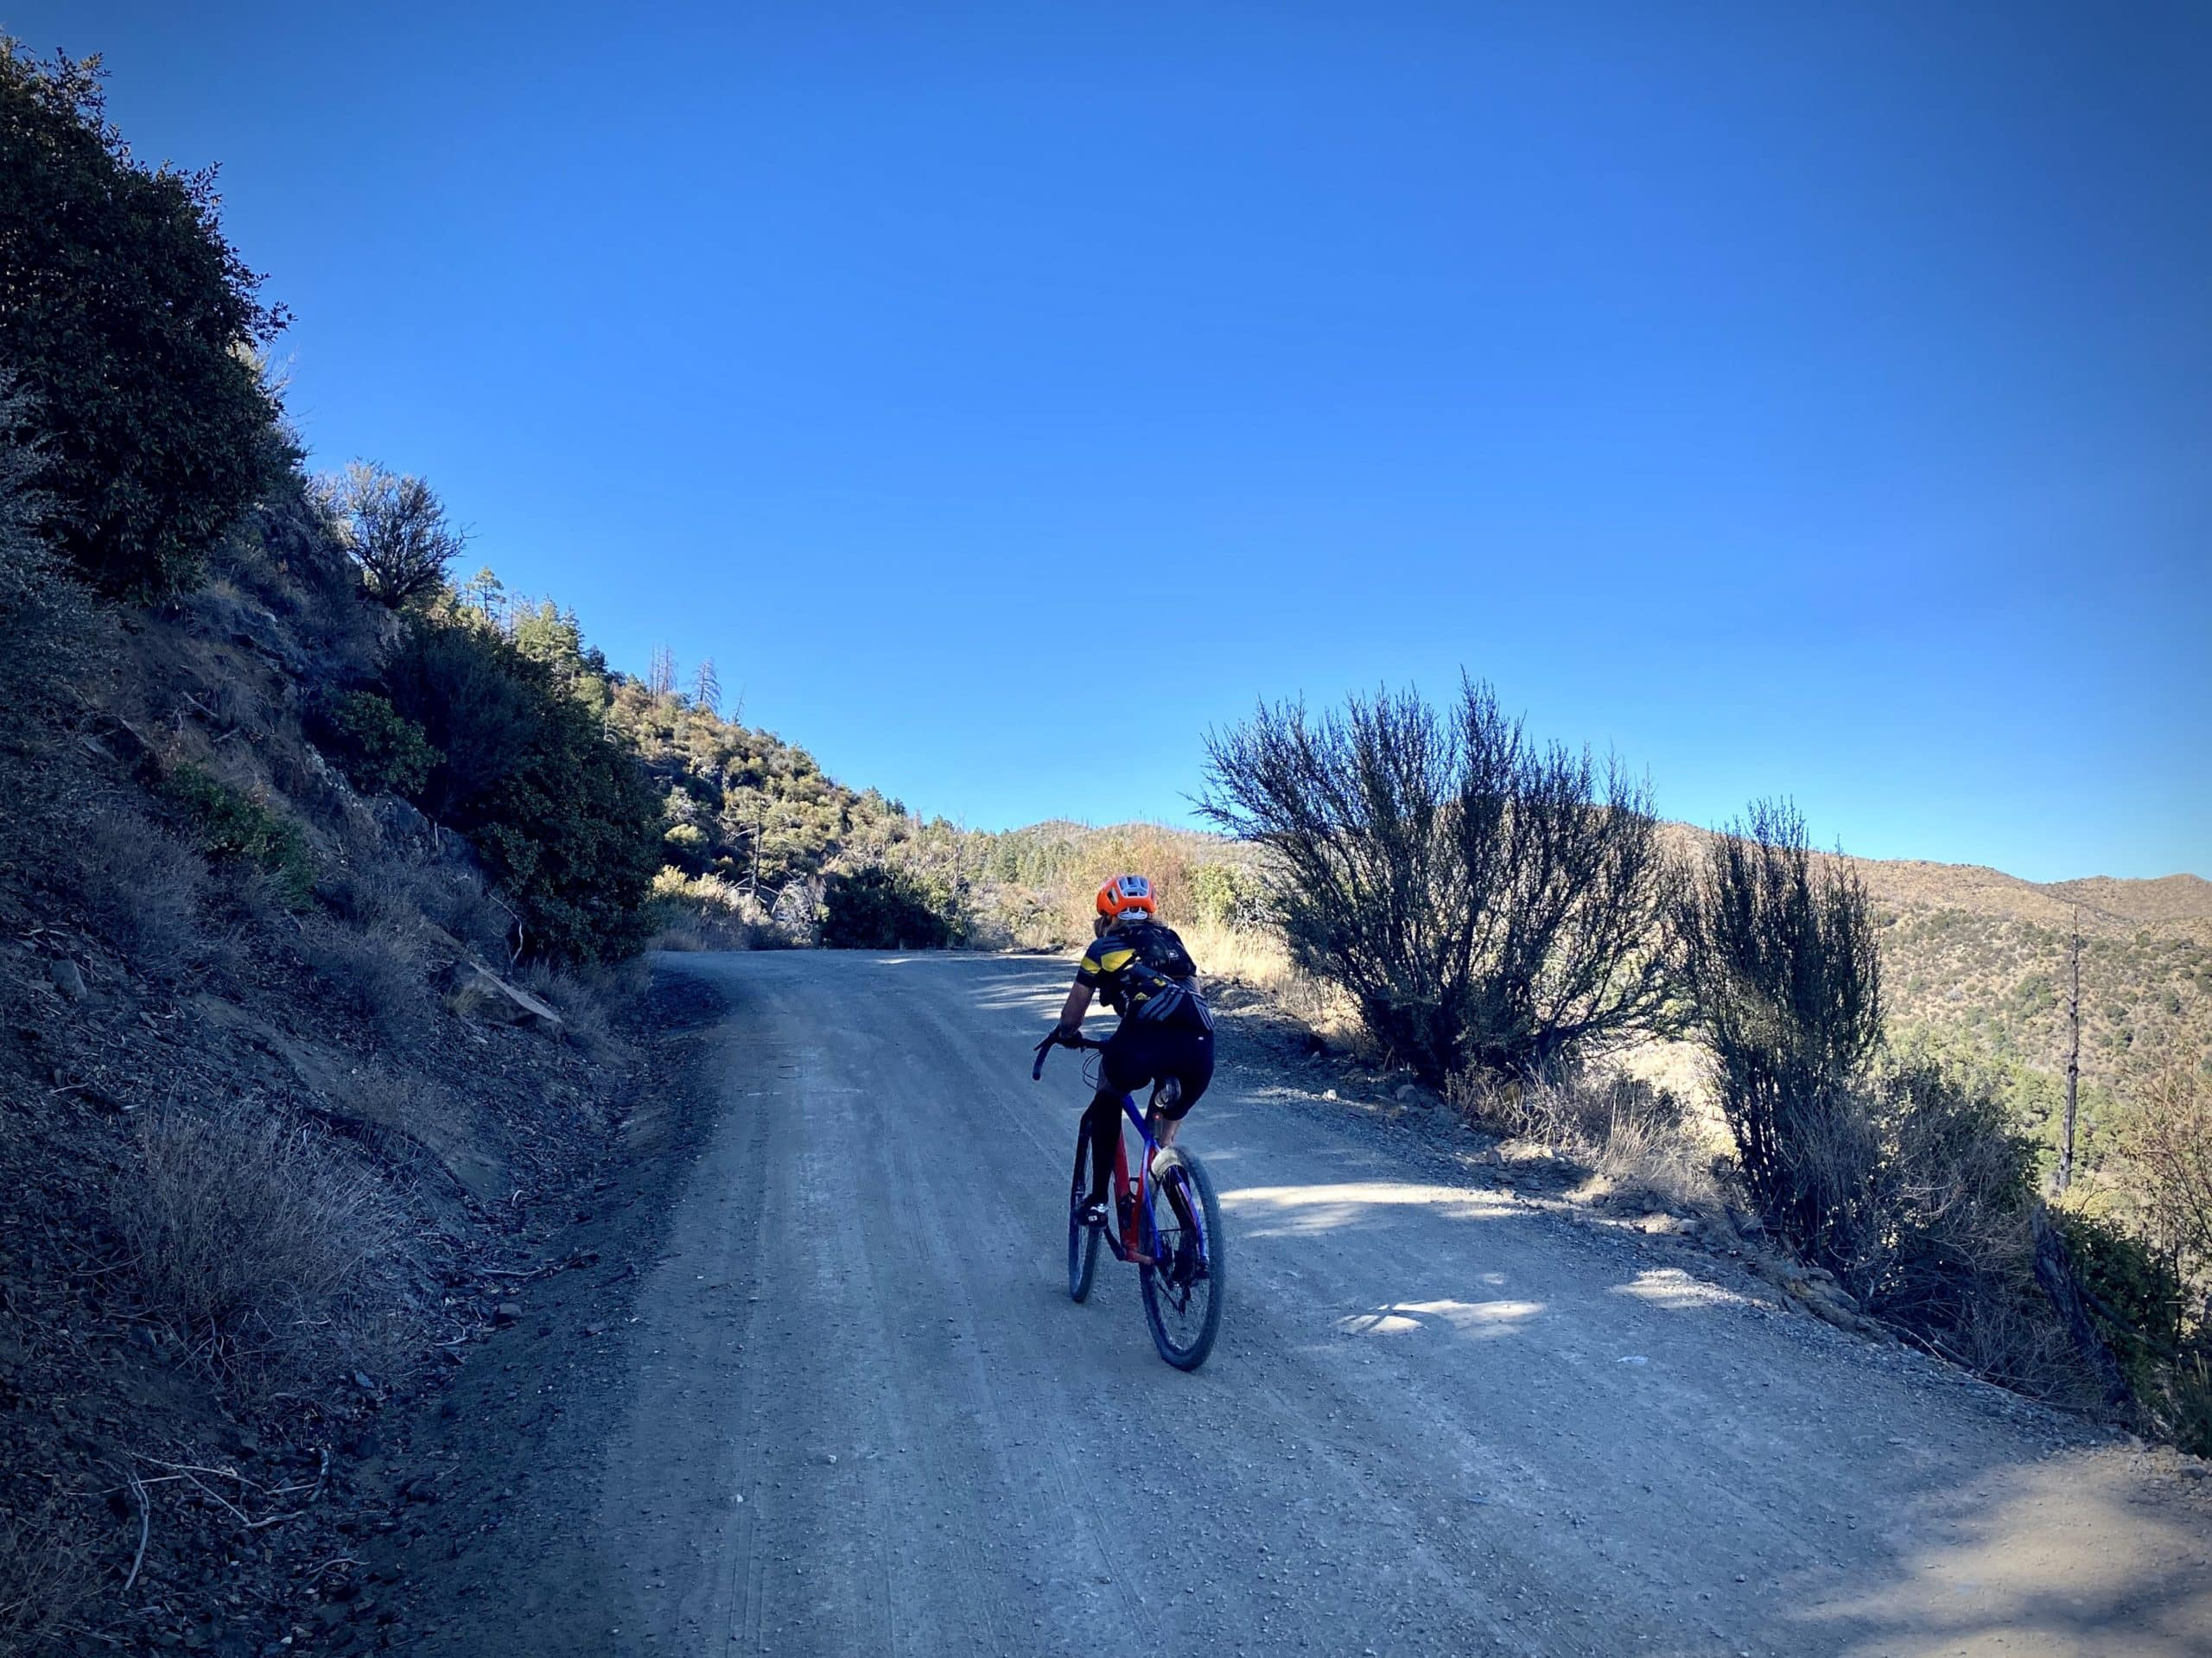 Cyclist in the shadows high on ridge of dirt road in Chiricahua Mountains.